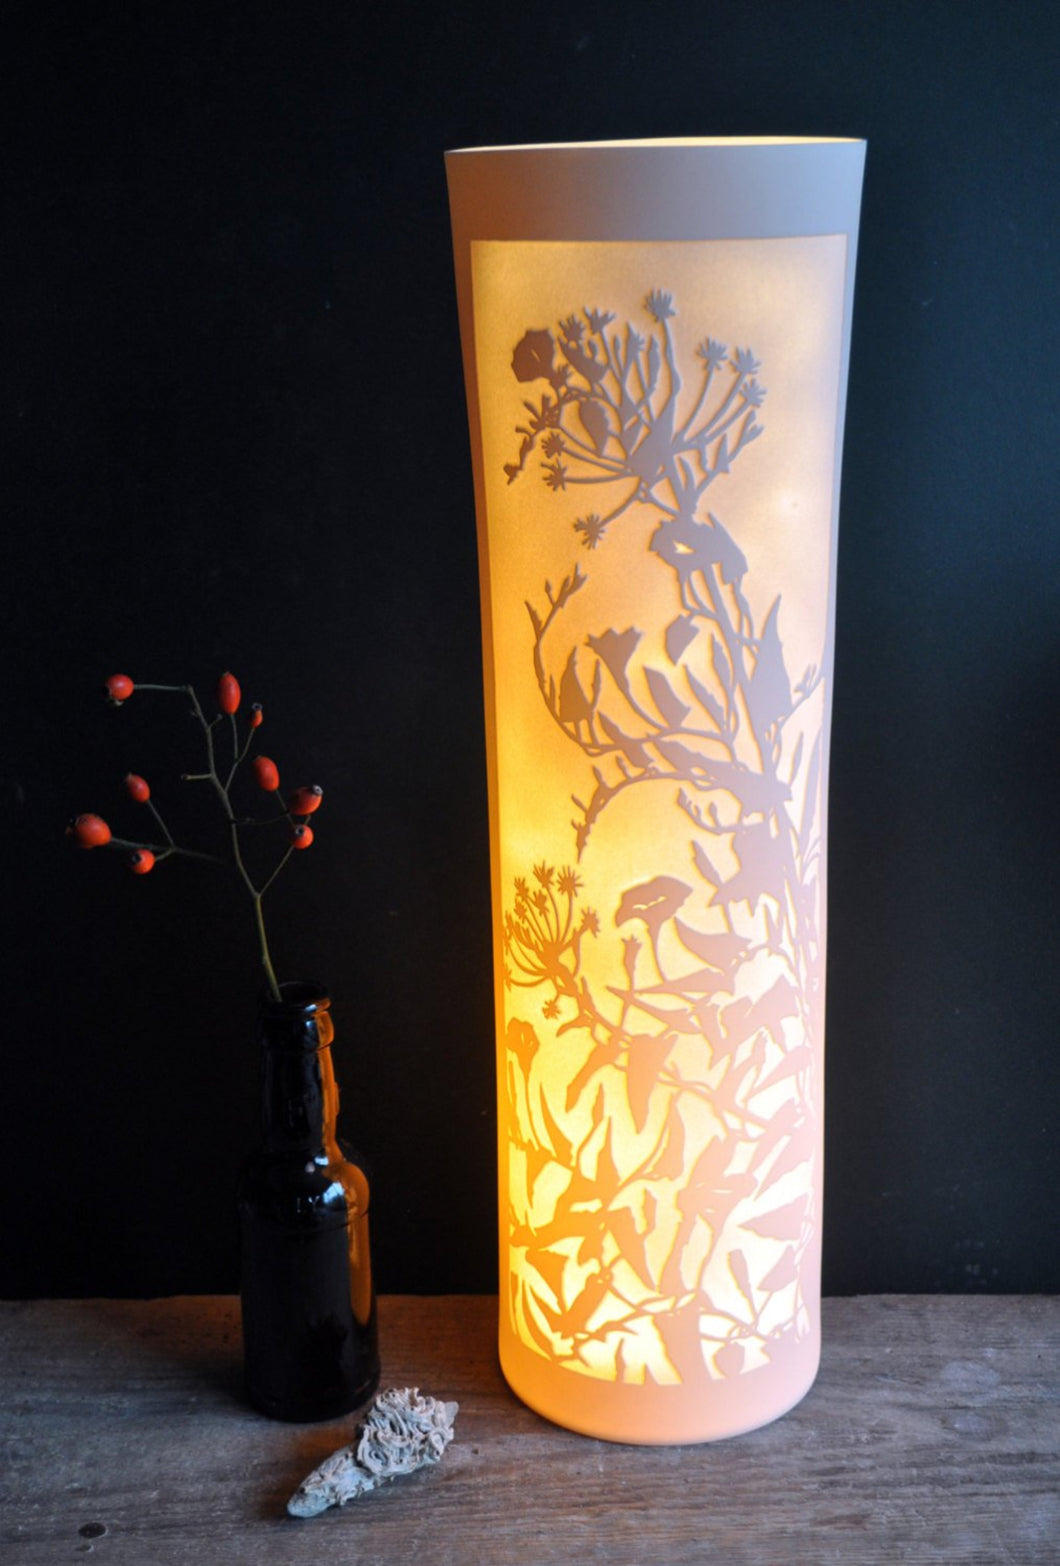 Cylinder Lamp, glowing orange depicting tangled bindweed hedgerow in silhouette. Bottle with rosehips and shell on the left.